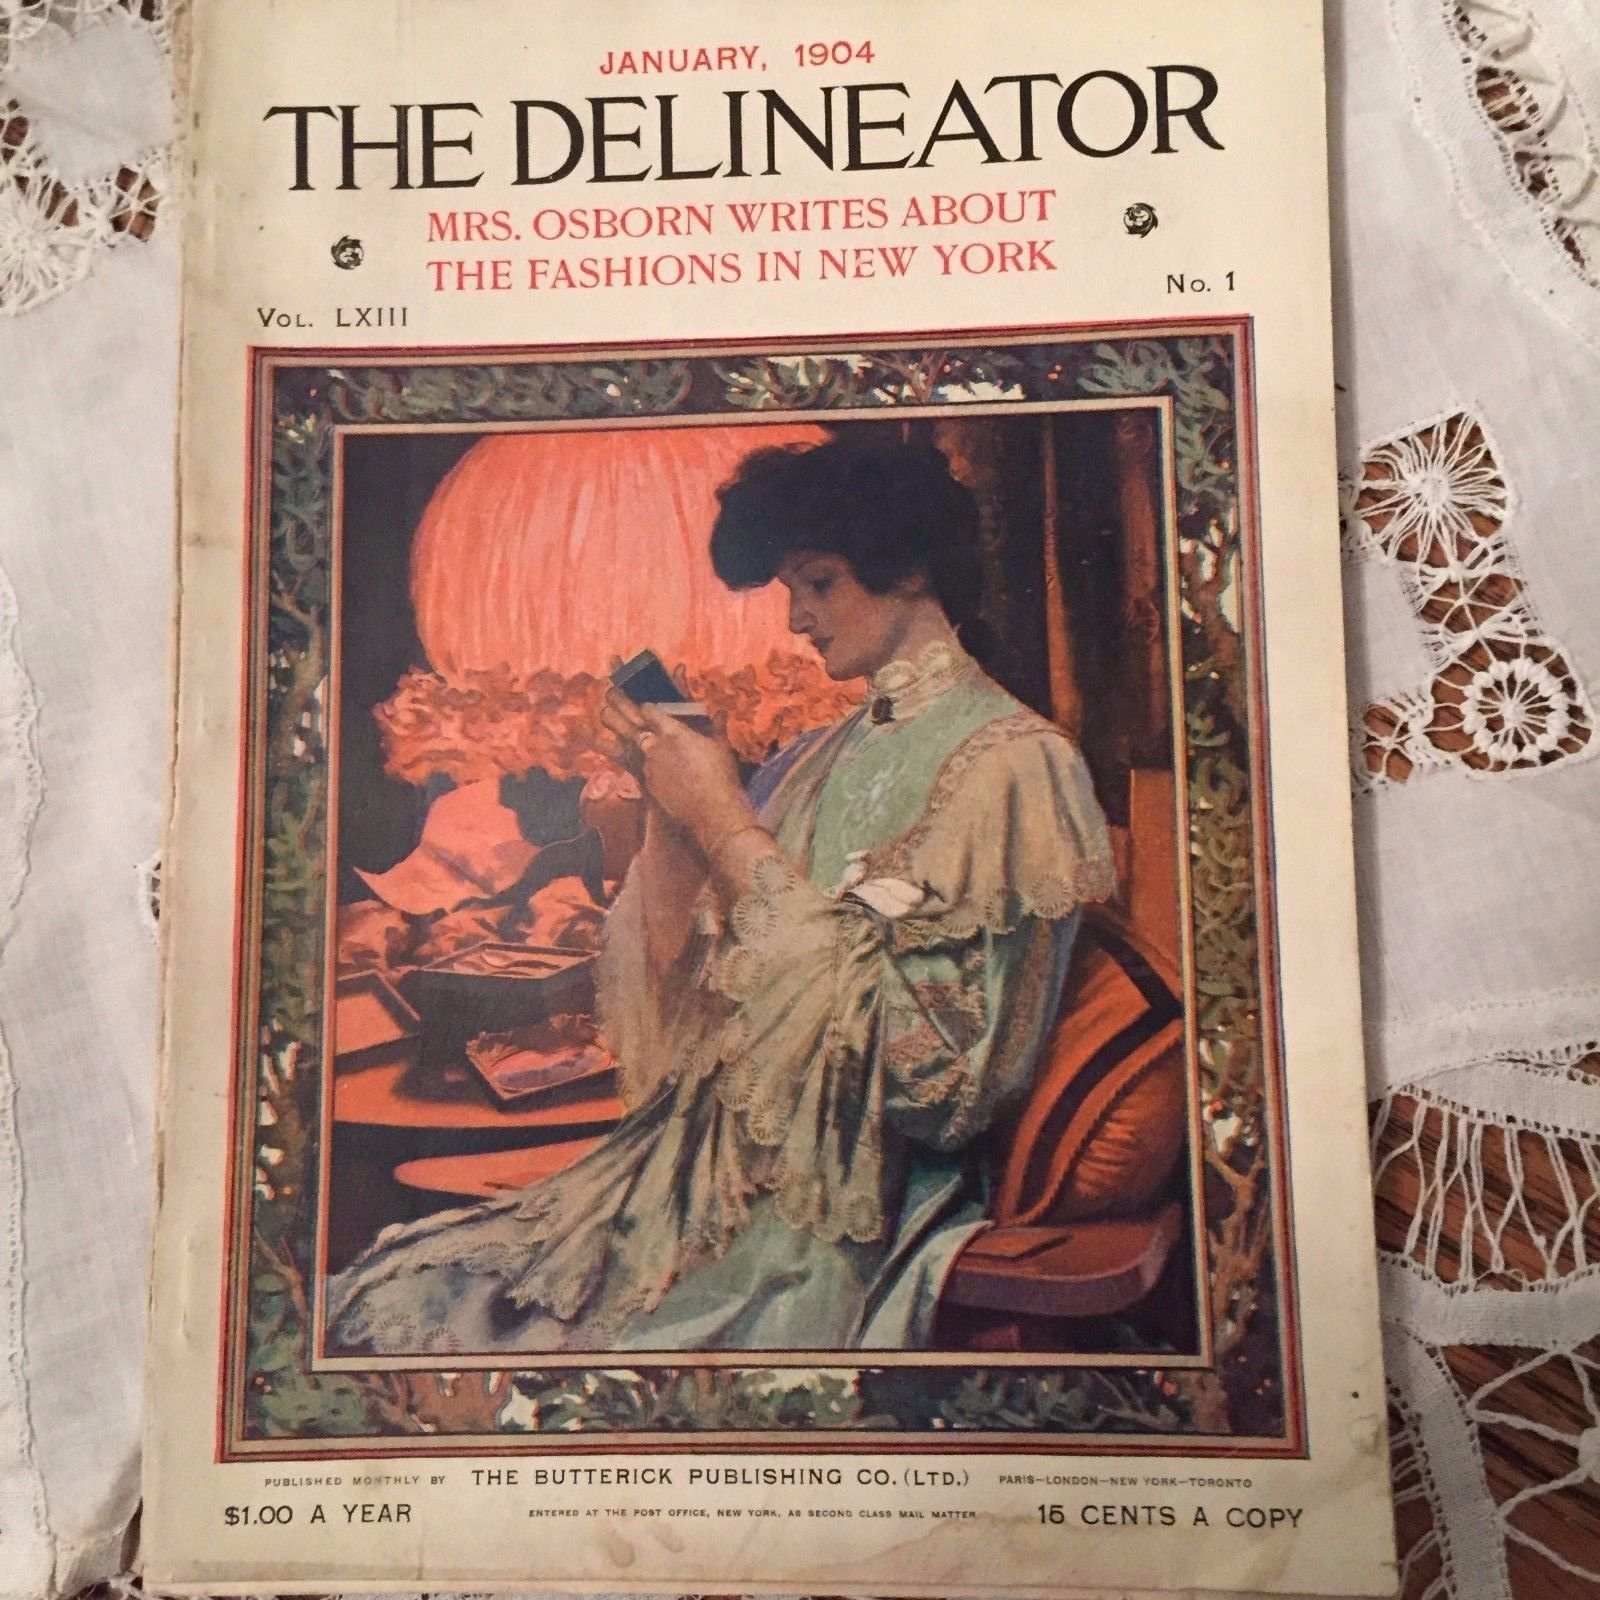 Lovely place to research: January, 1904 Delineator magazine